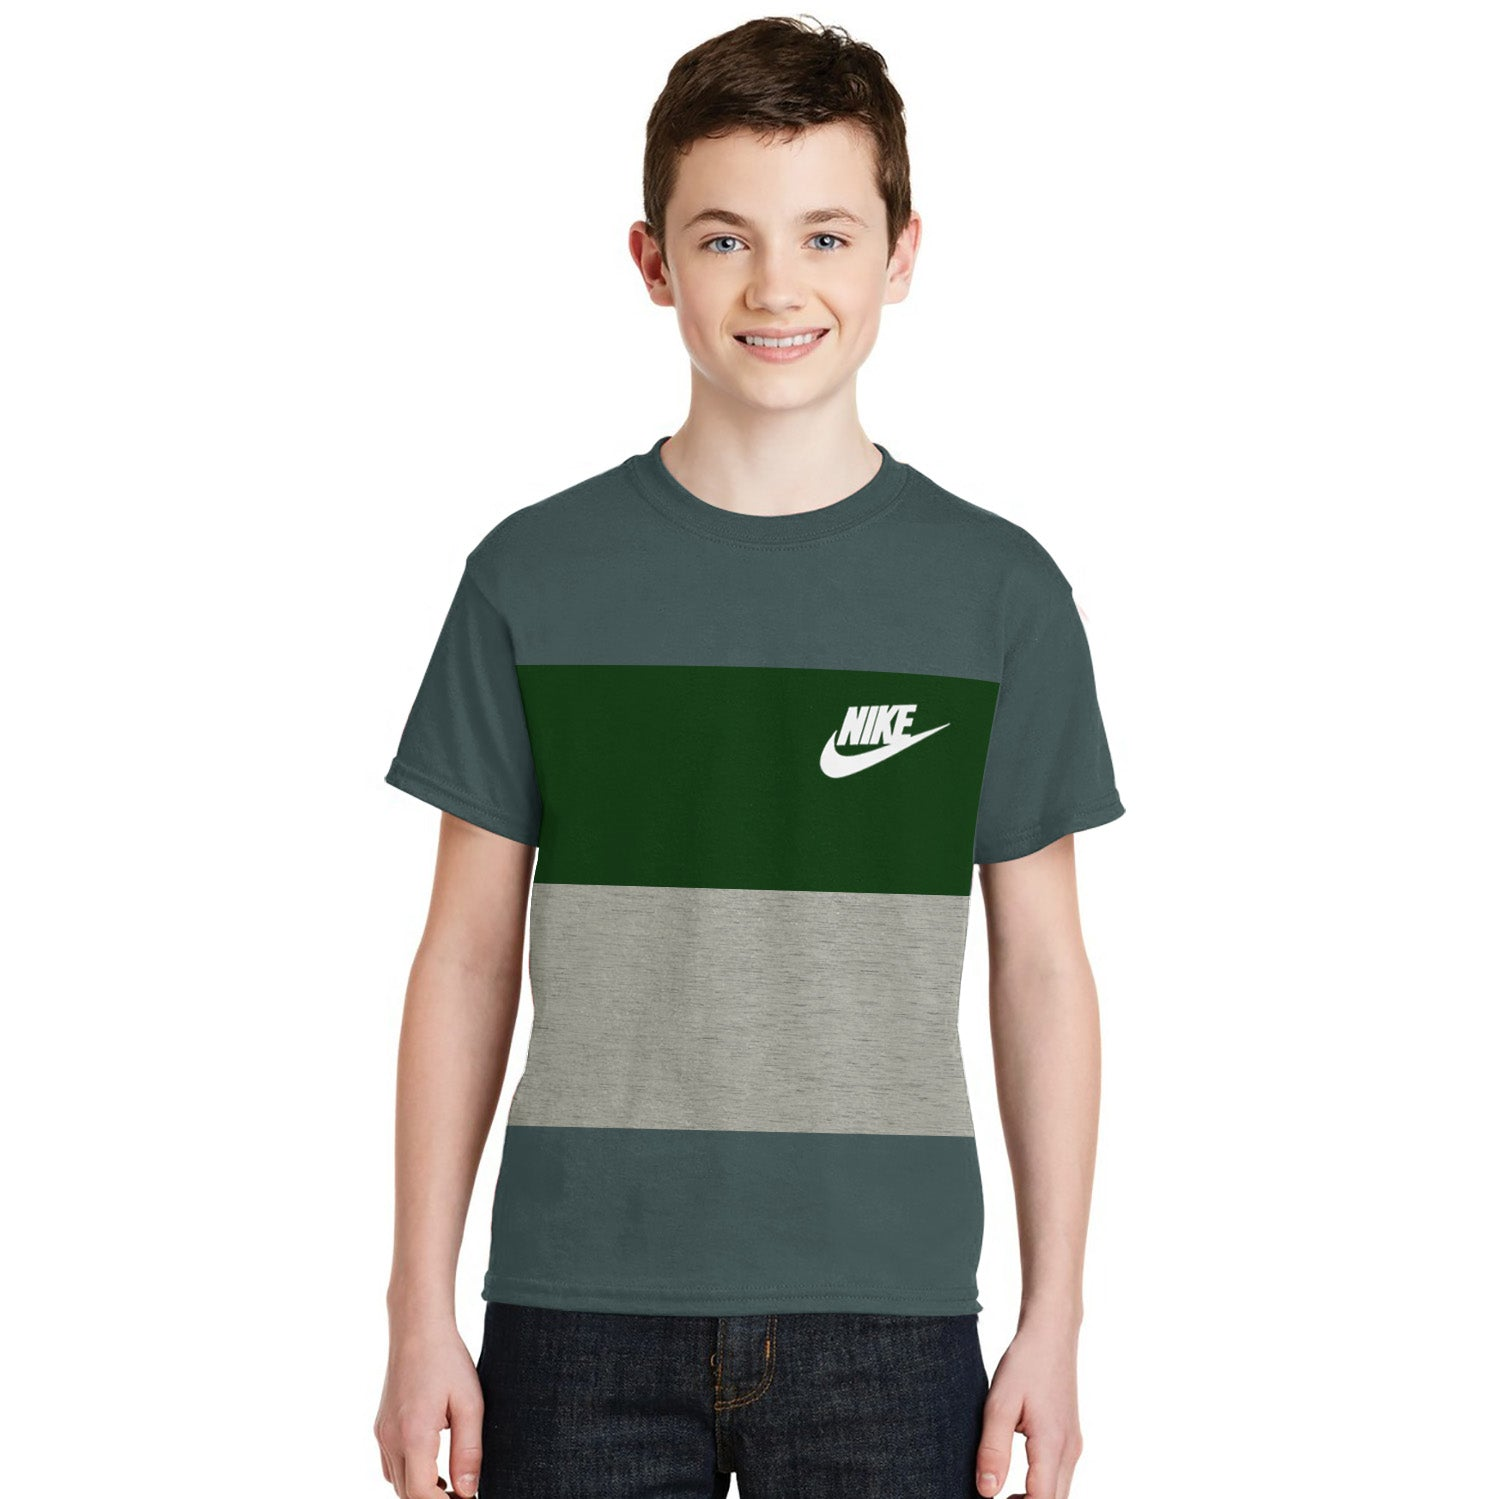 NK Crew Neck Single Jersey Short Sleeve Tee Shirt For Boys-Cadet Blue with Green & Grey Panels-SP1960